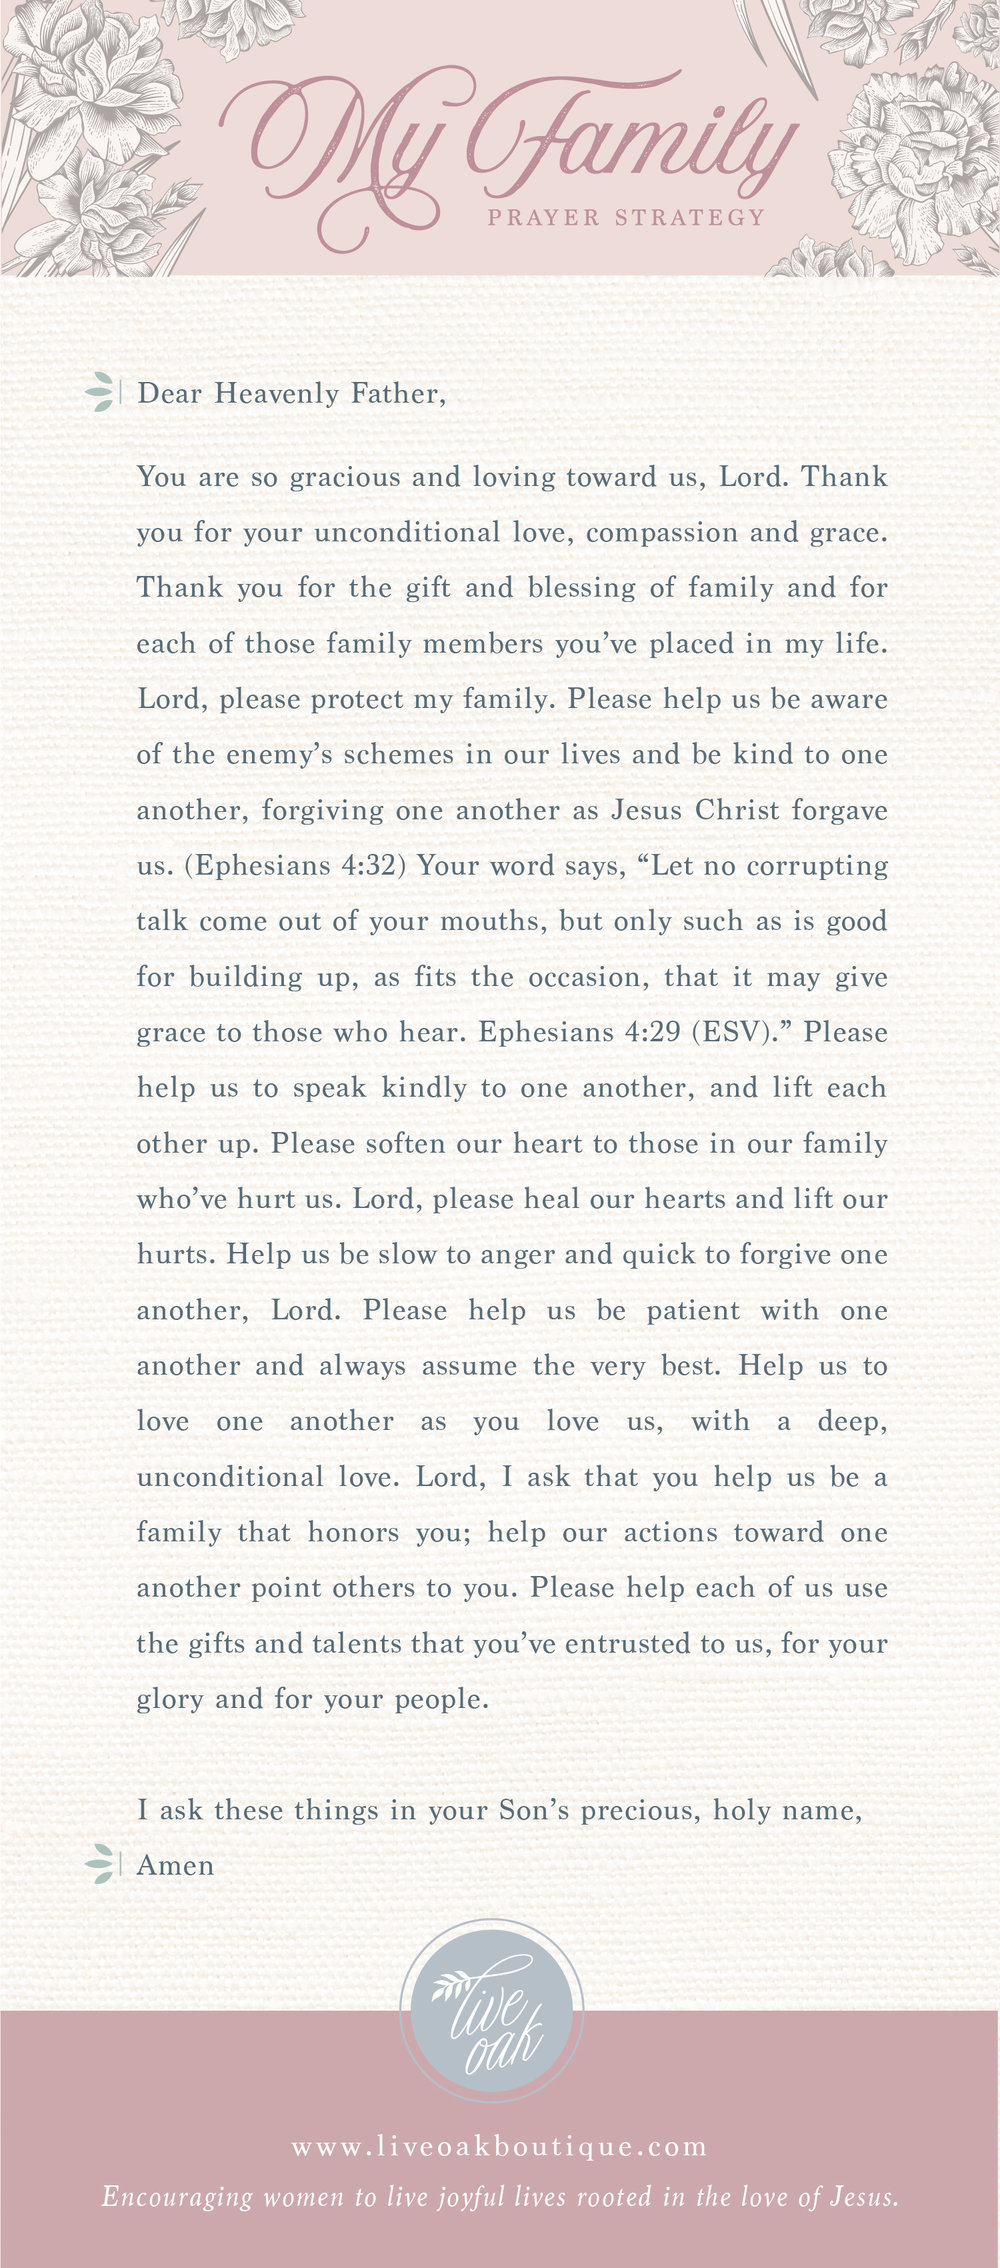 Prayer Strategy for Family from Live Oak Boutique. Stationery and gifts rooted in the love of Jesus! www.liveoakboutique.com